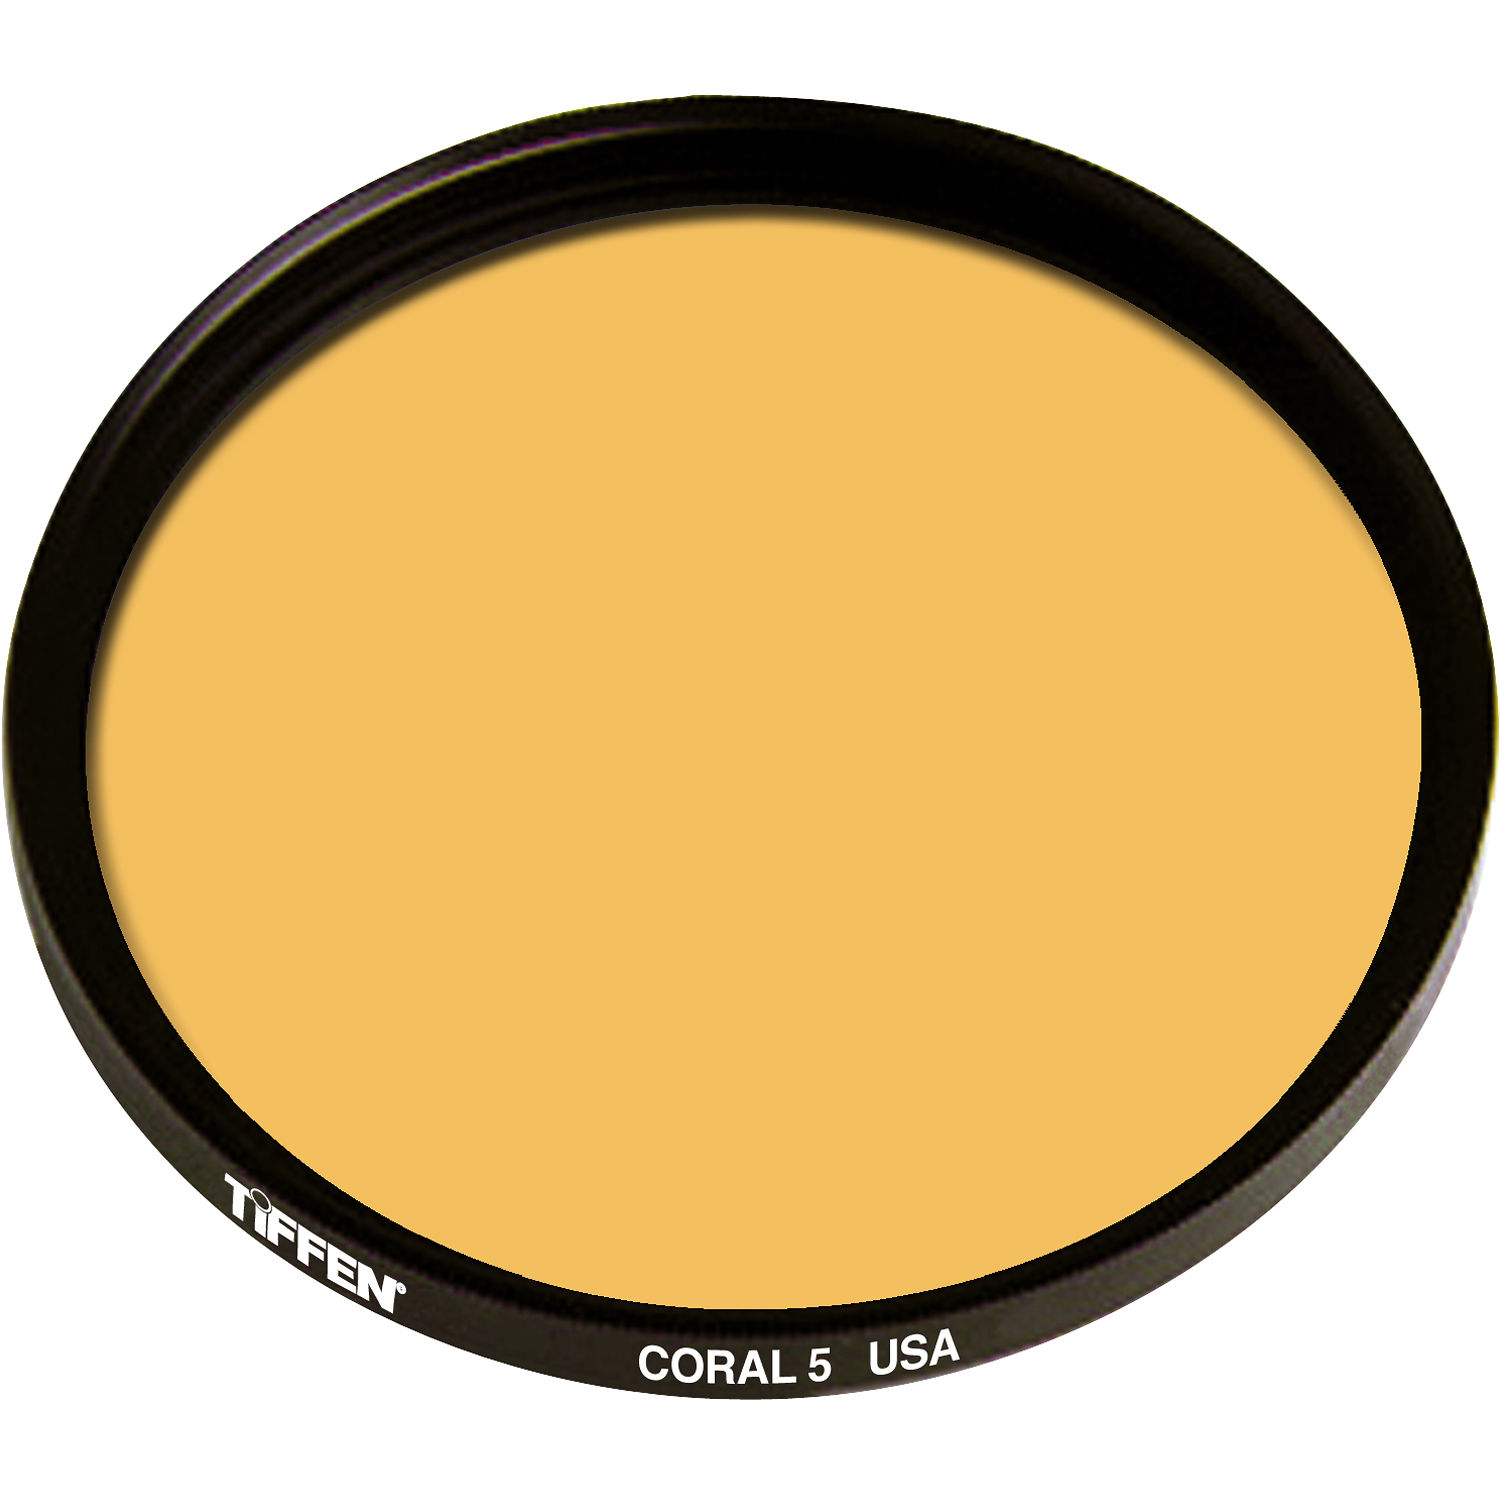 Tiffen Series 9 Coral 5 Solid Color Round Filter